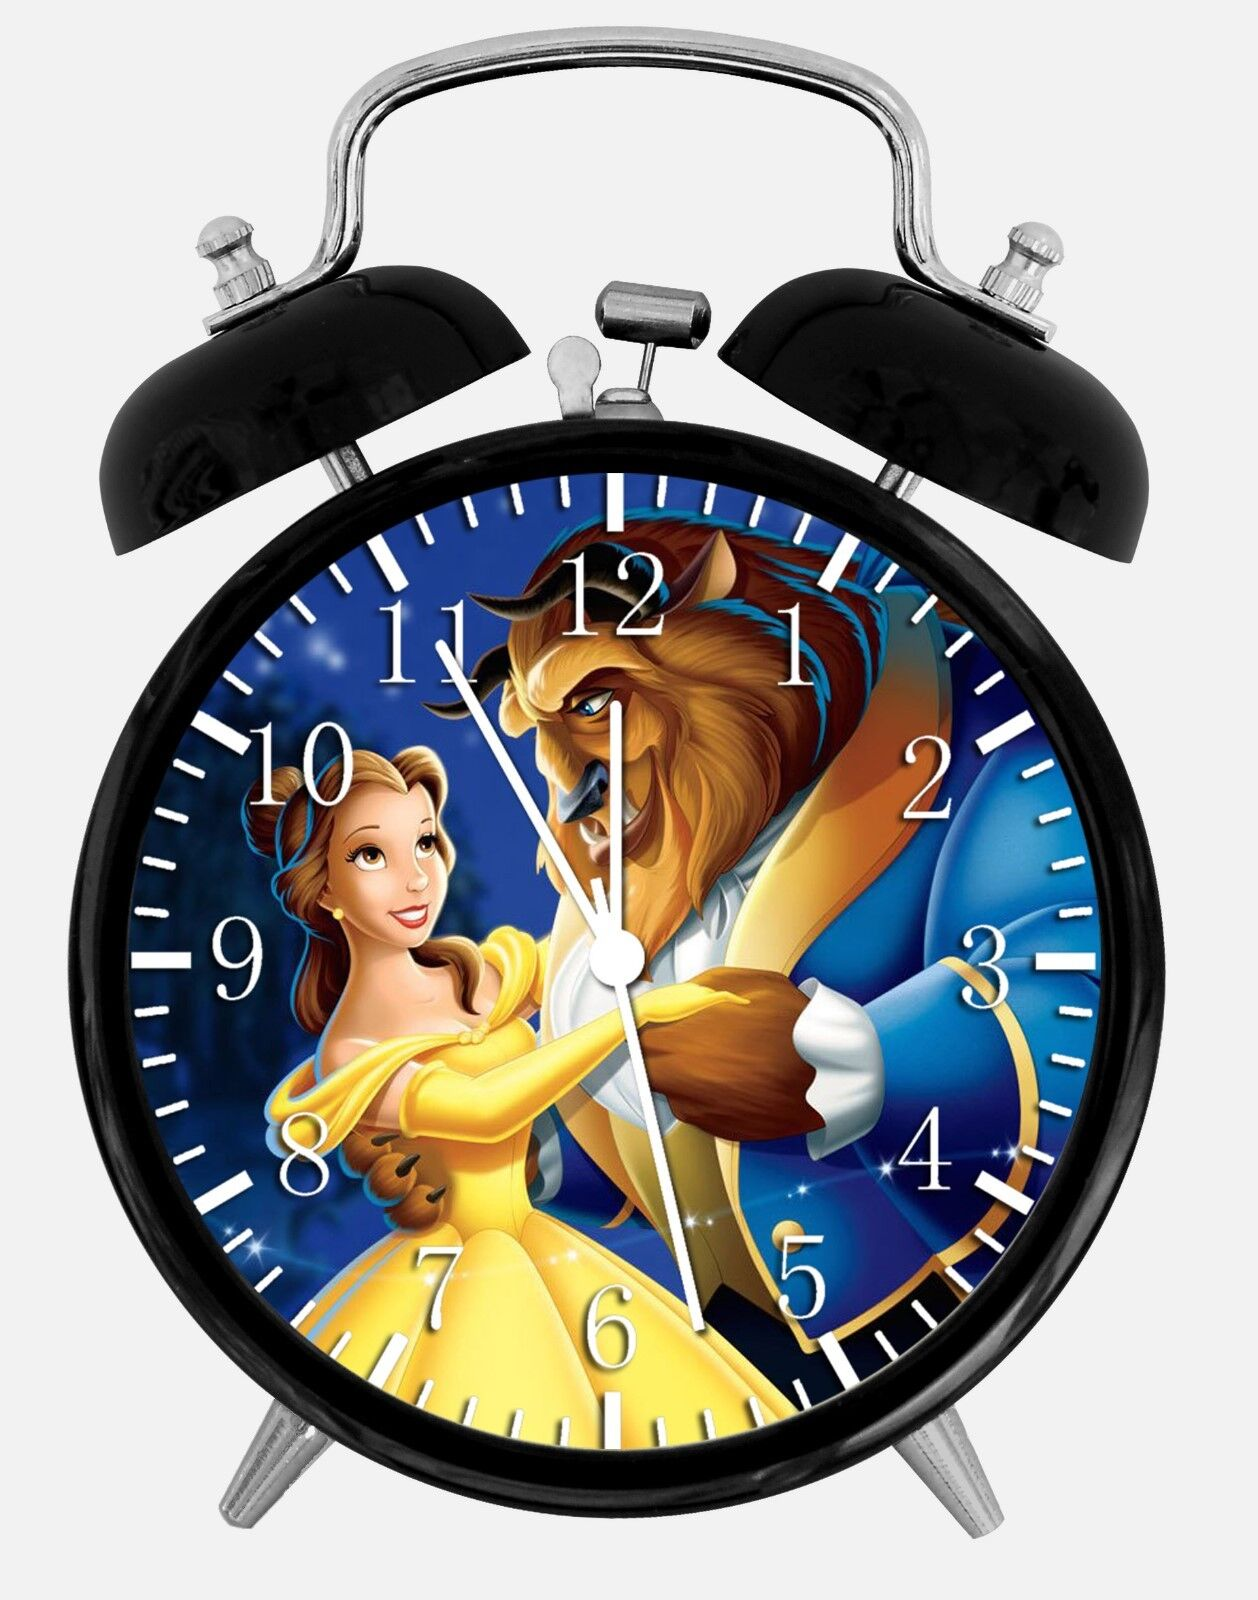 "Beauty and the Beast Alarm Desk Clock 3.75"" Home or Office Decor F04 Nice Gift"